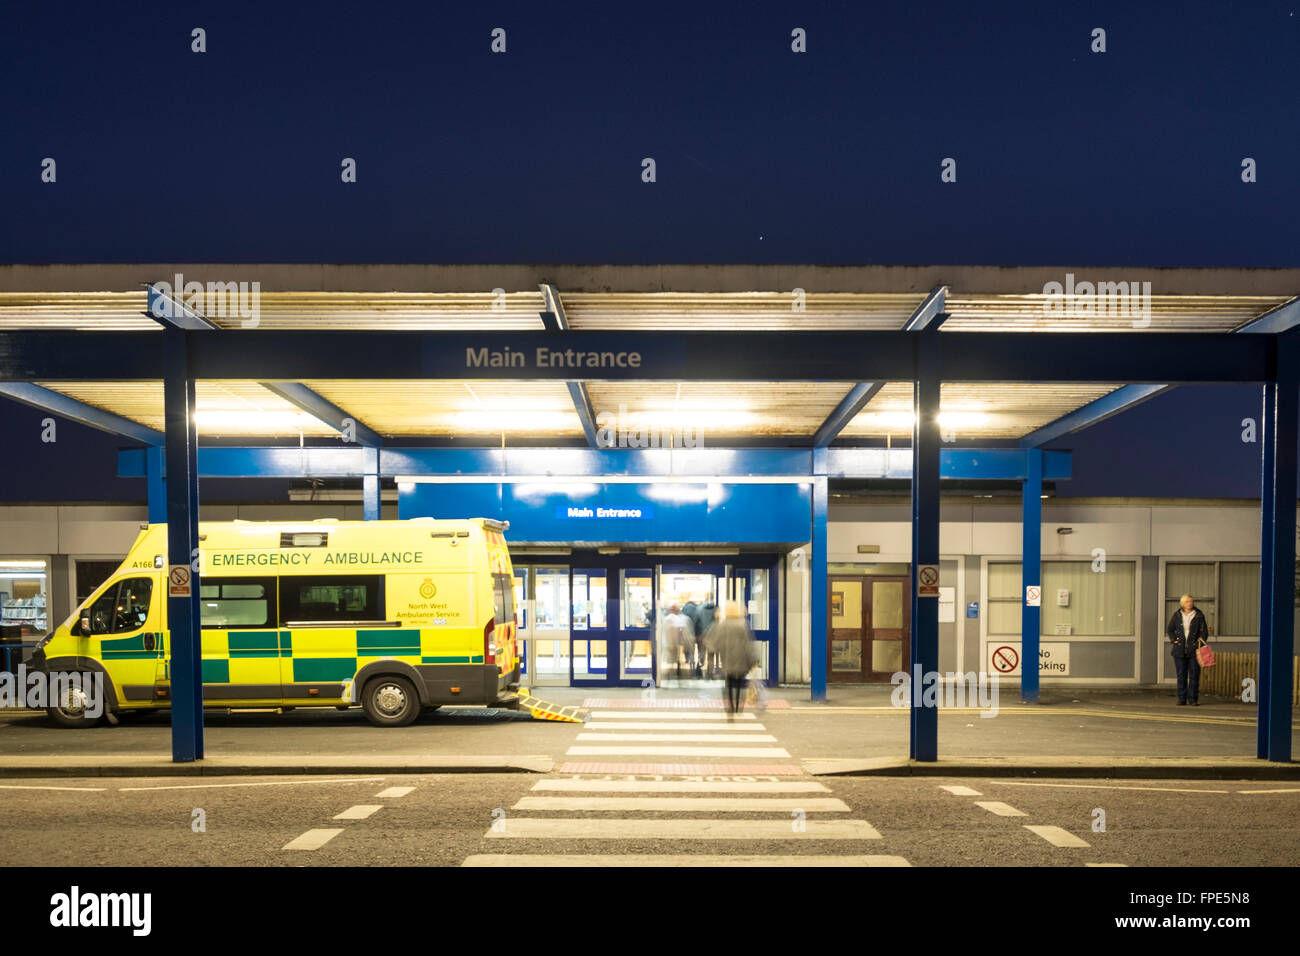 Entrance to the Royal Preston Hospital at night with ambulance parked outside - Stock Image